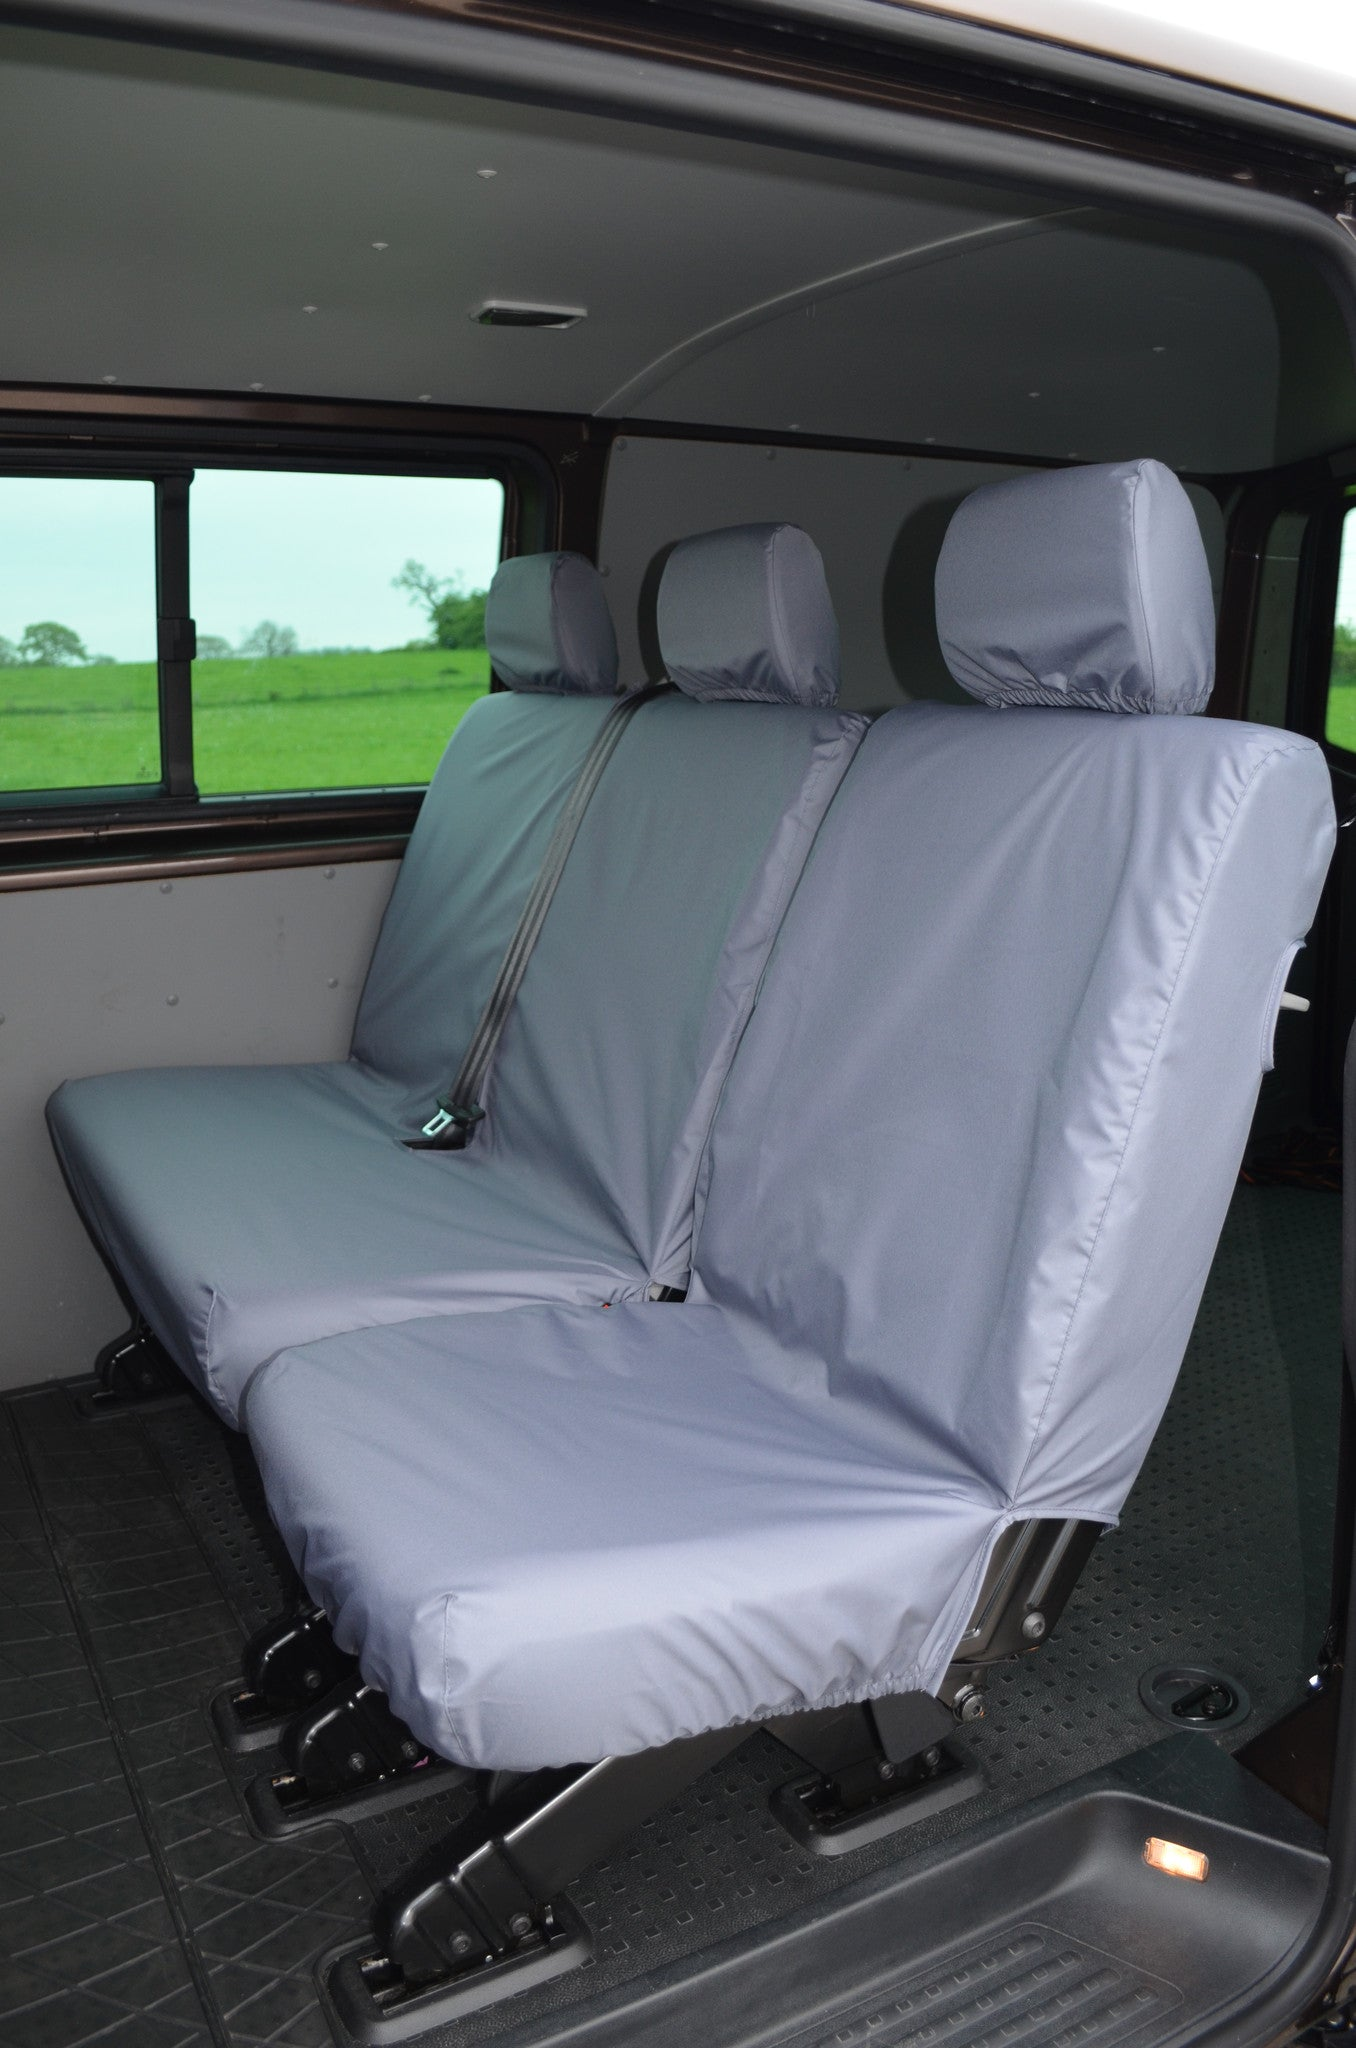 VW Volkswagen Transporter T6 Kombi 2015 Onwards Rear Seat Covers